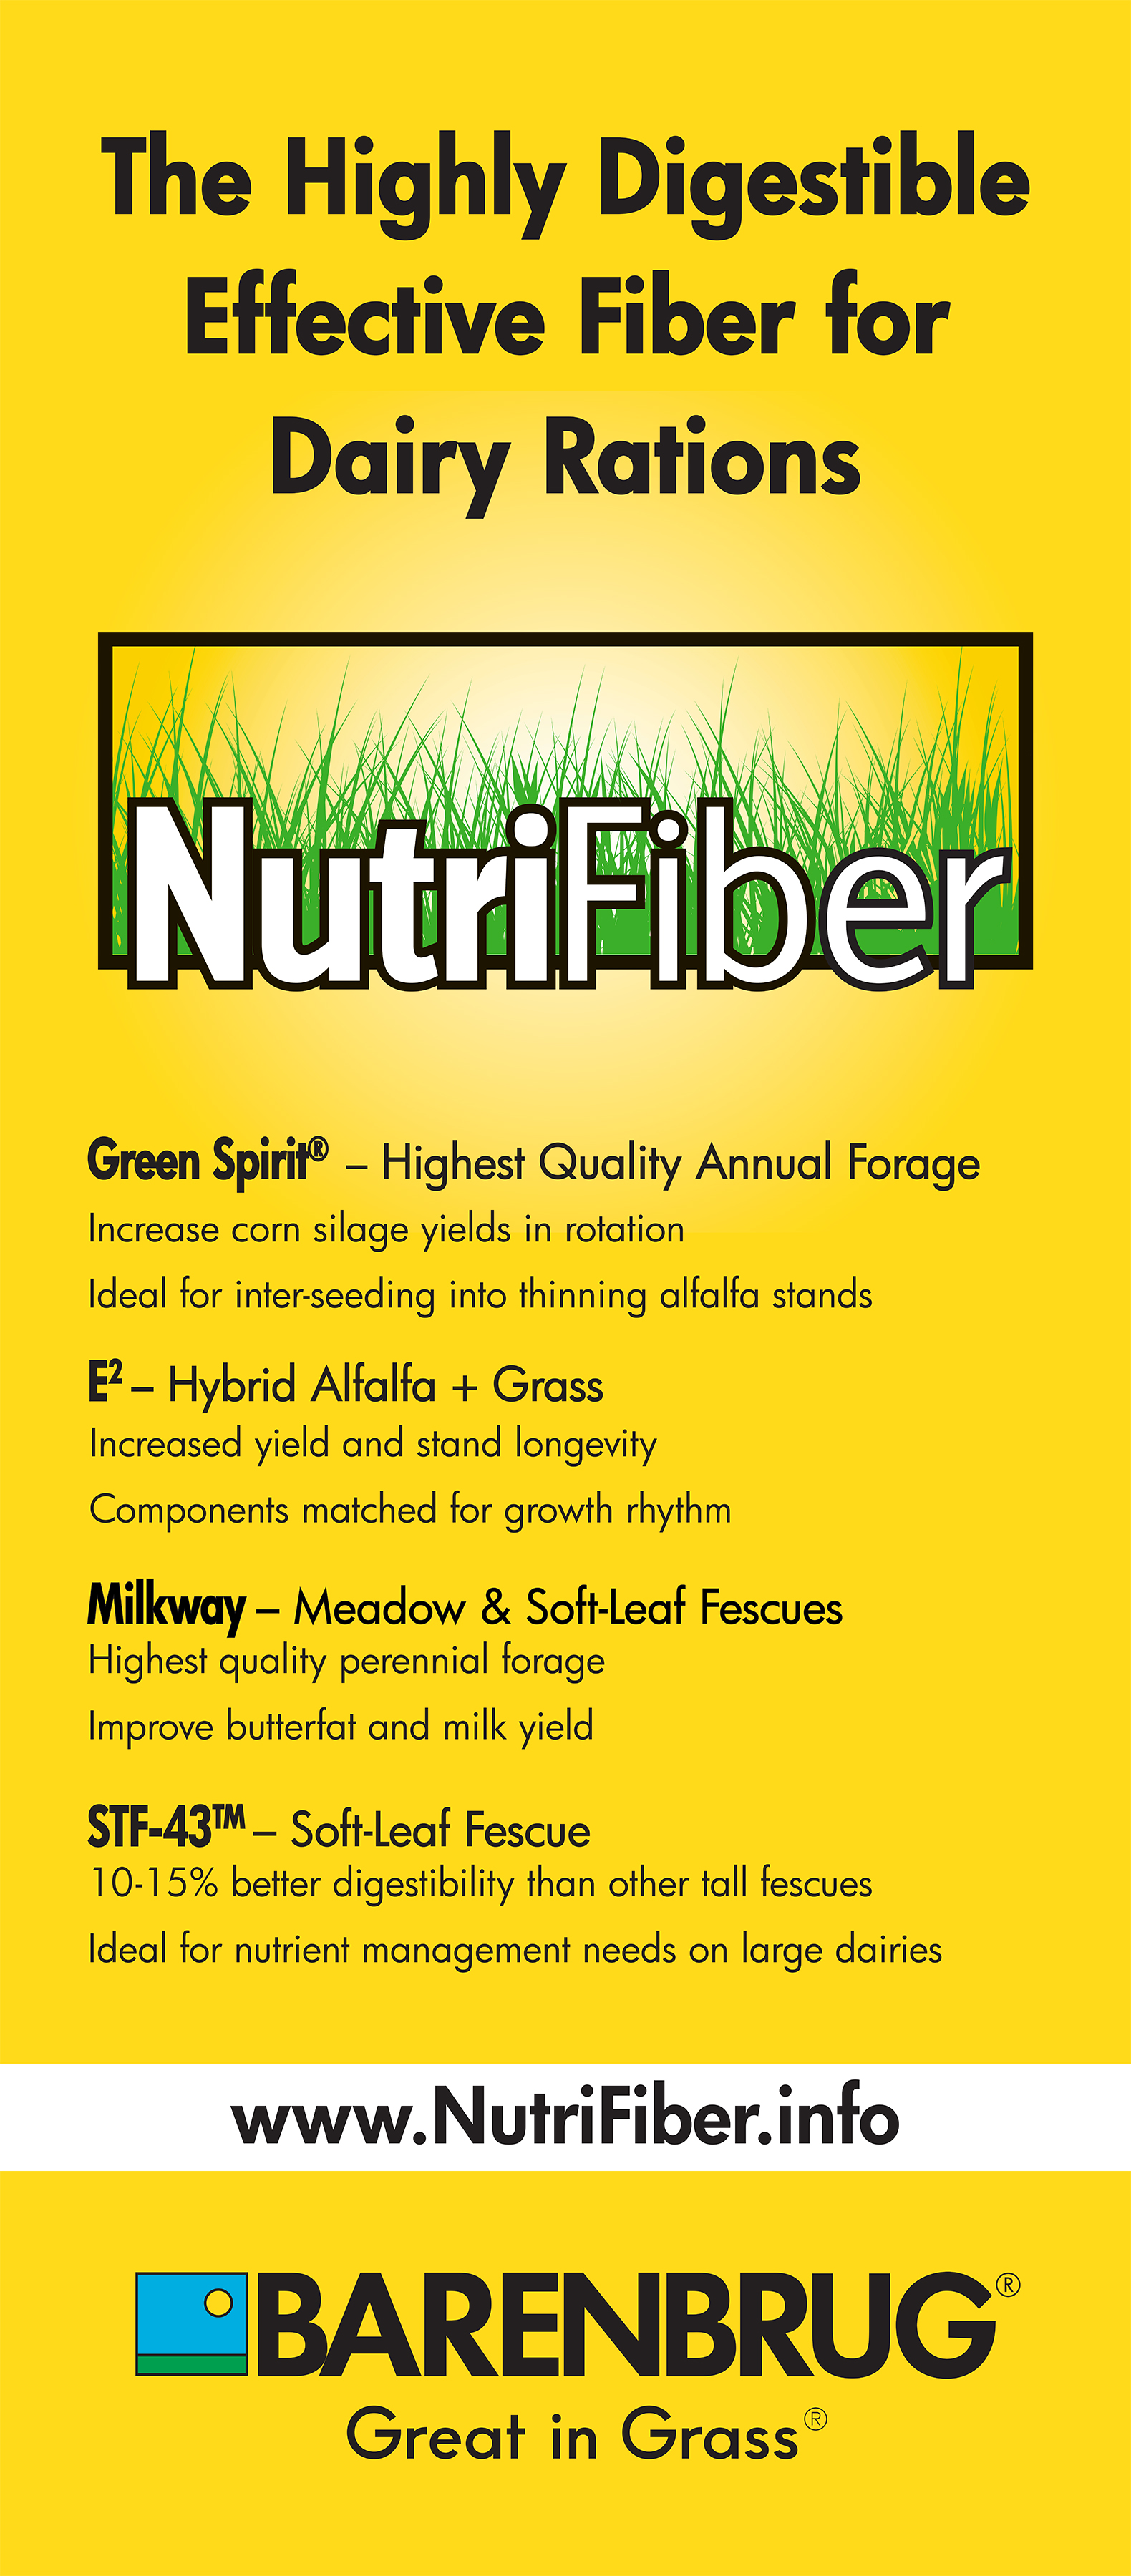 Effective Fiber for Dairy Rations: Nutrifiber